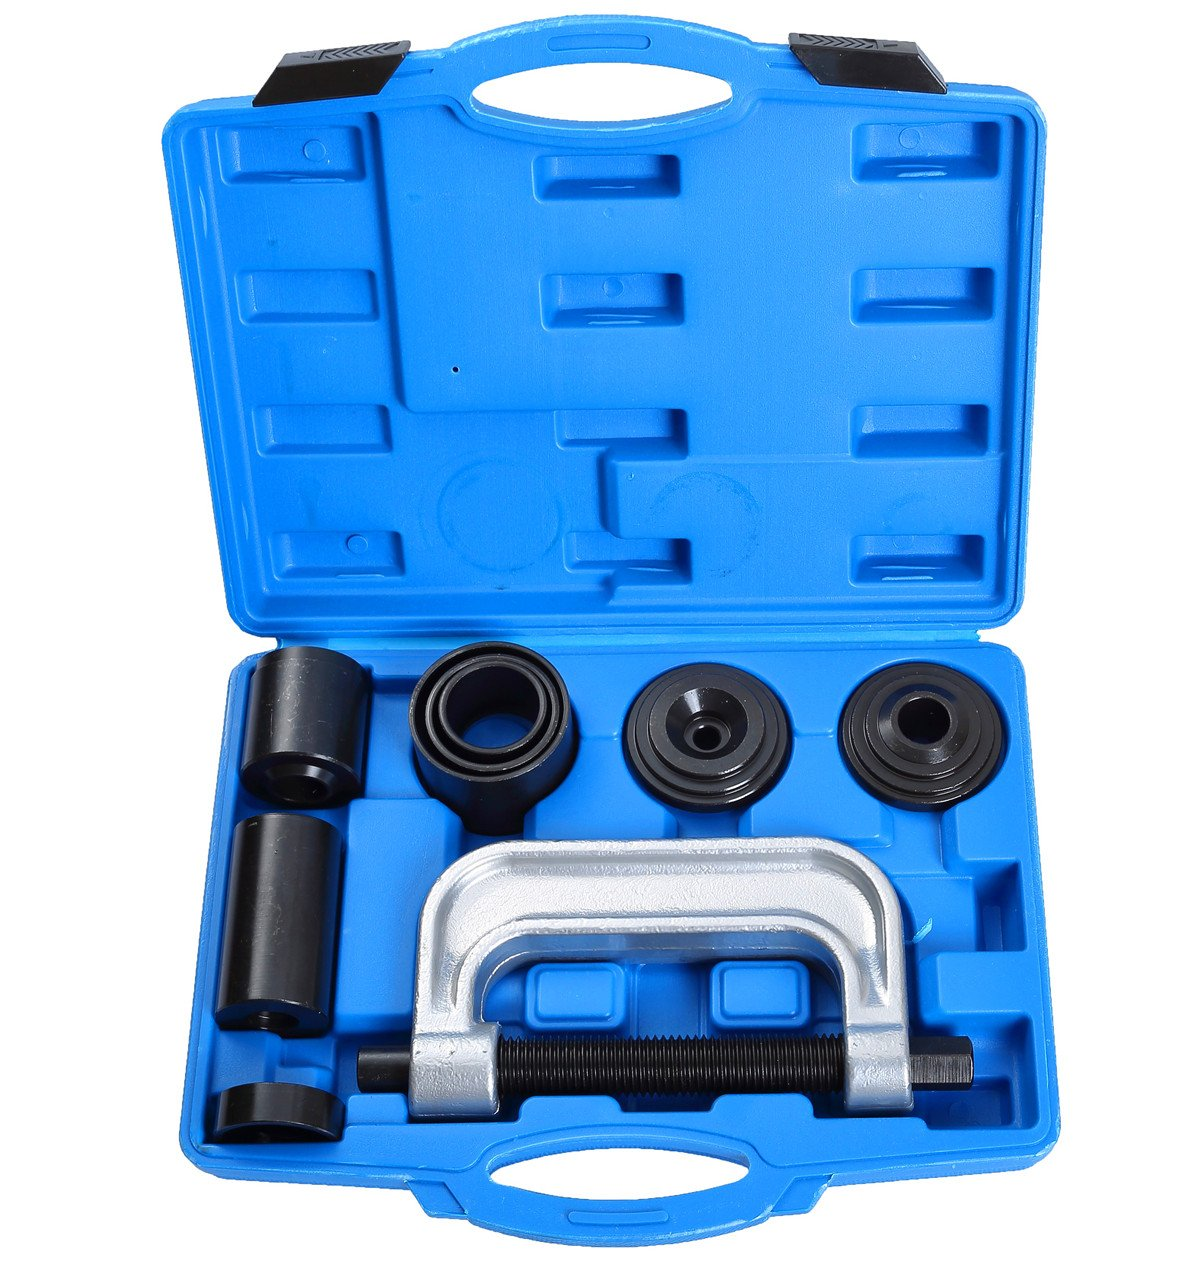 DASBET 4 in1 Ball Joint Service Auto Tool Kit 2WD & 4WD Car Repair Remover Installer W/Case ZTECH AUTO